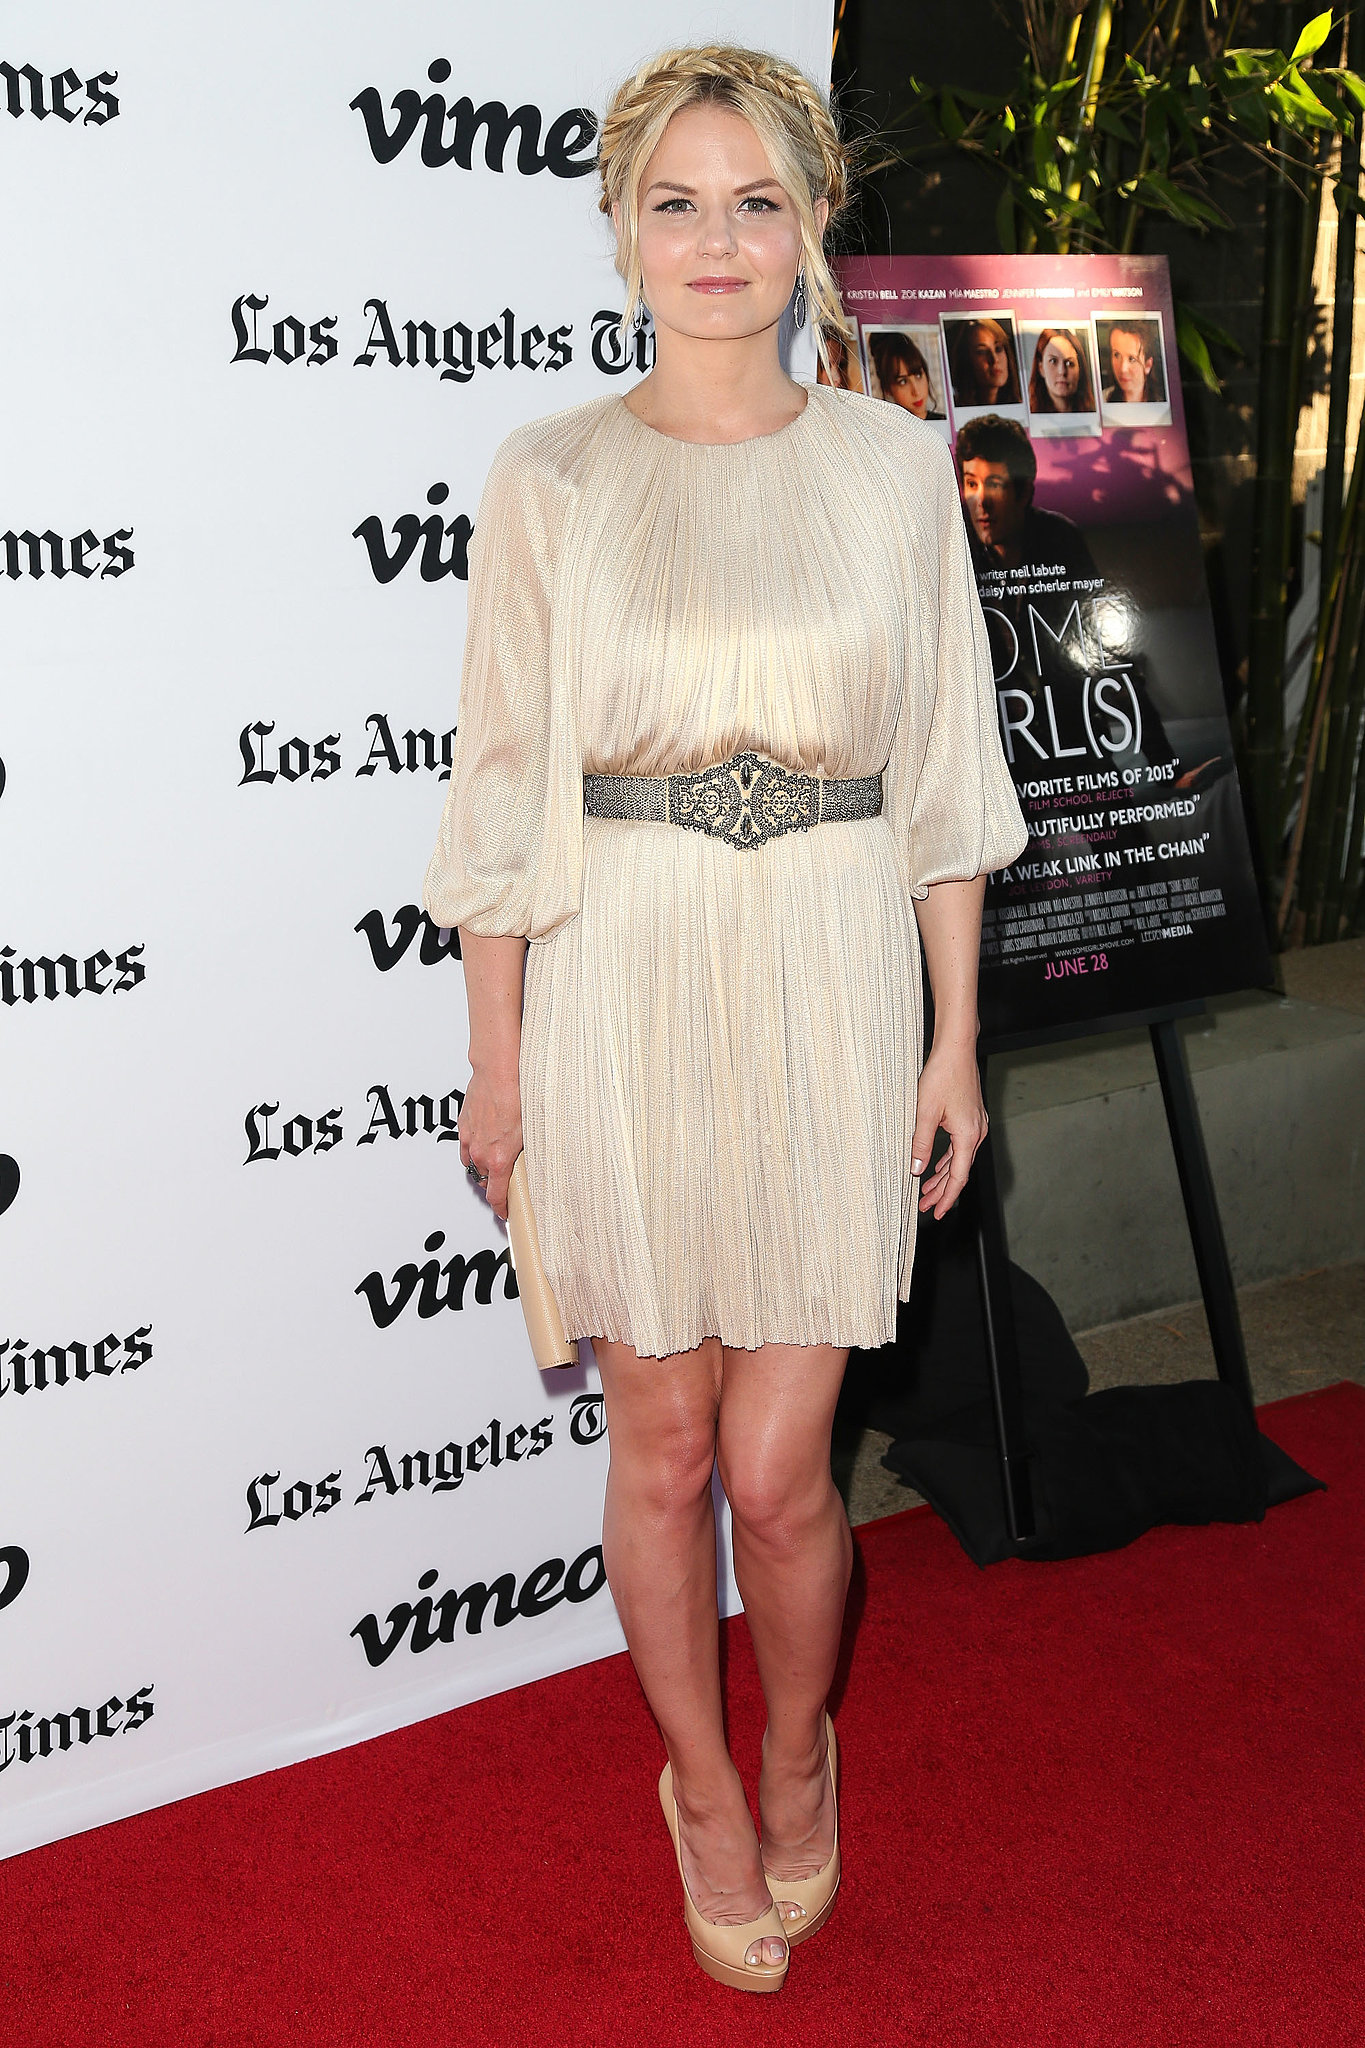 Clad in a champagne-hued dress, Jennifer Morrison proved that you need not wear bright colors to look summery.